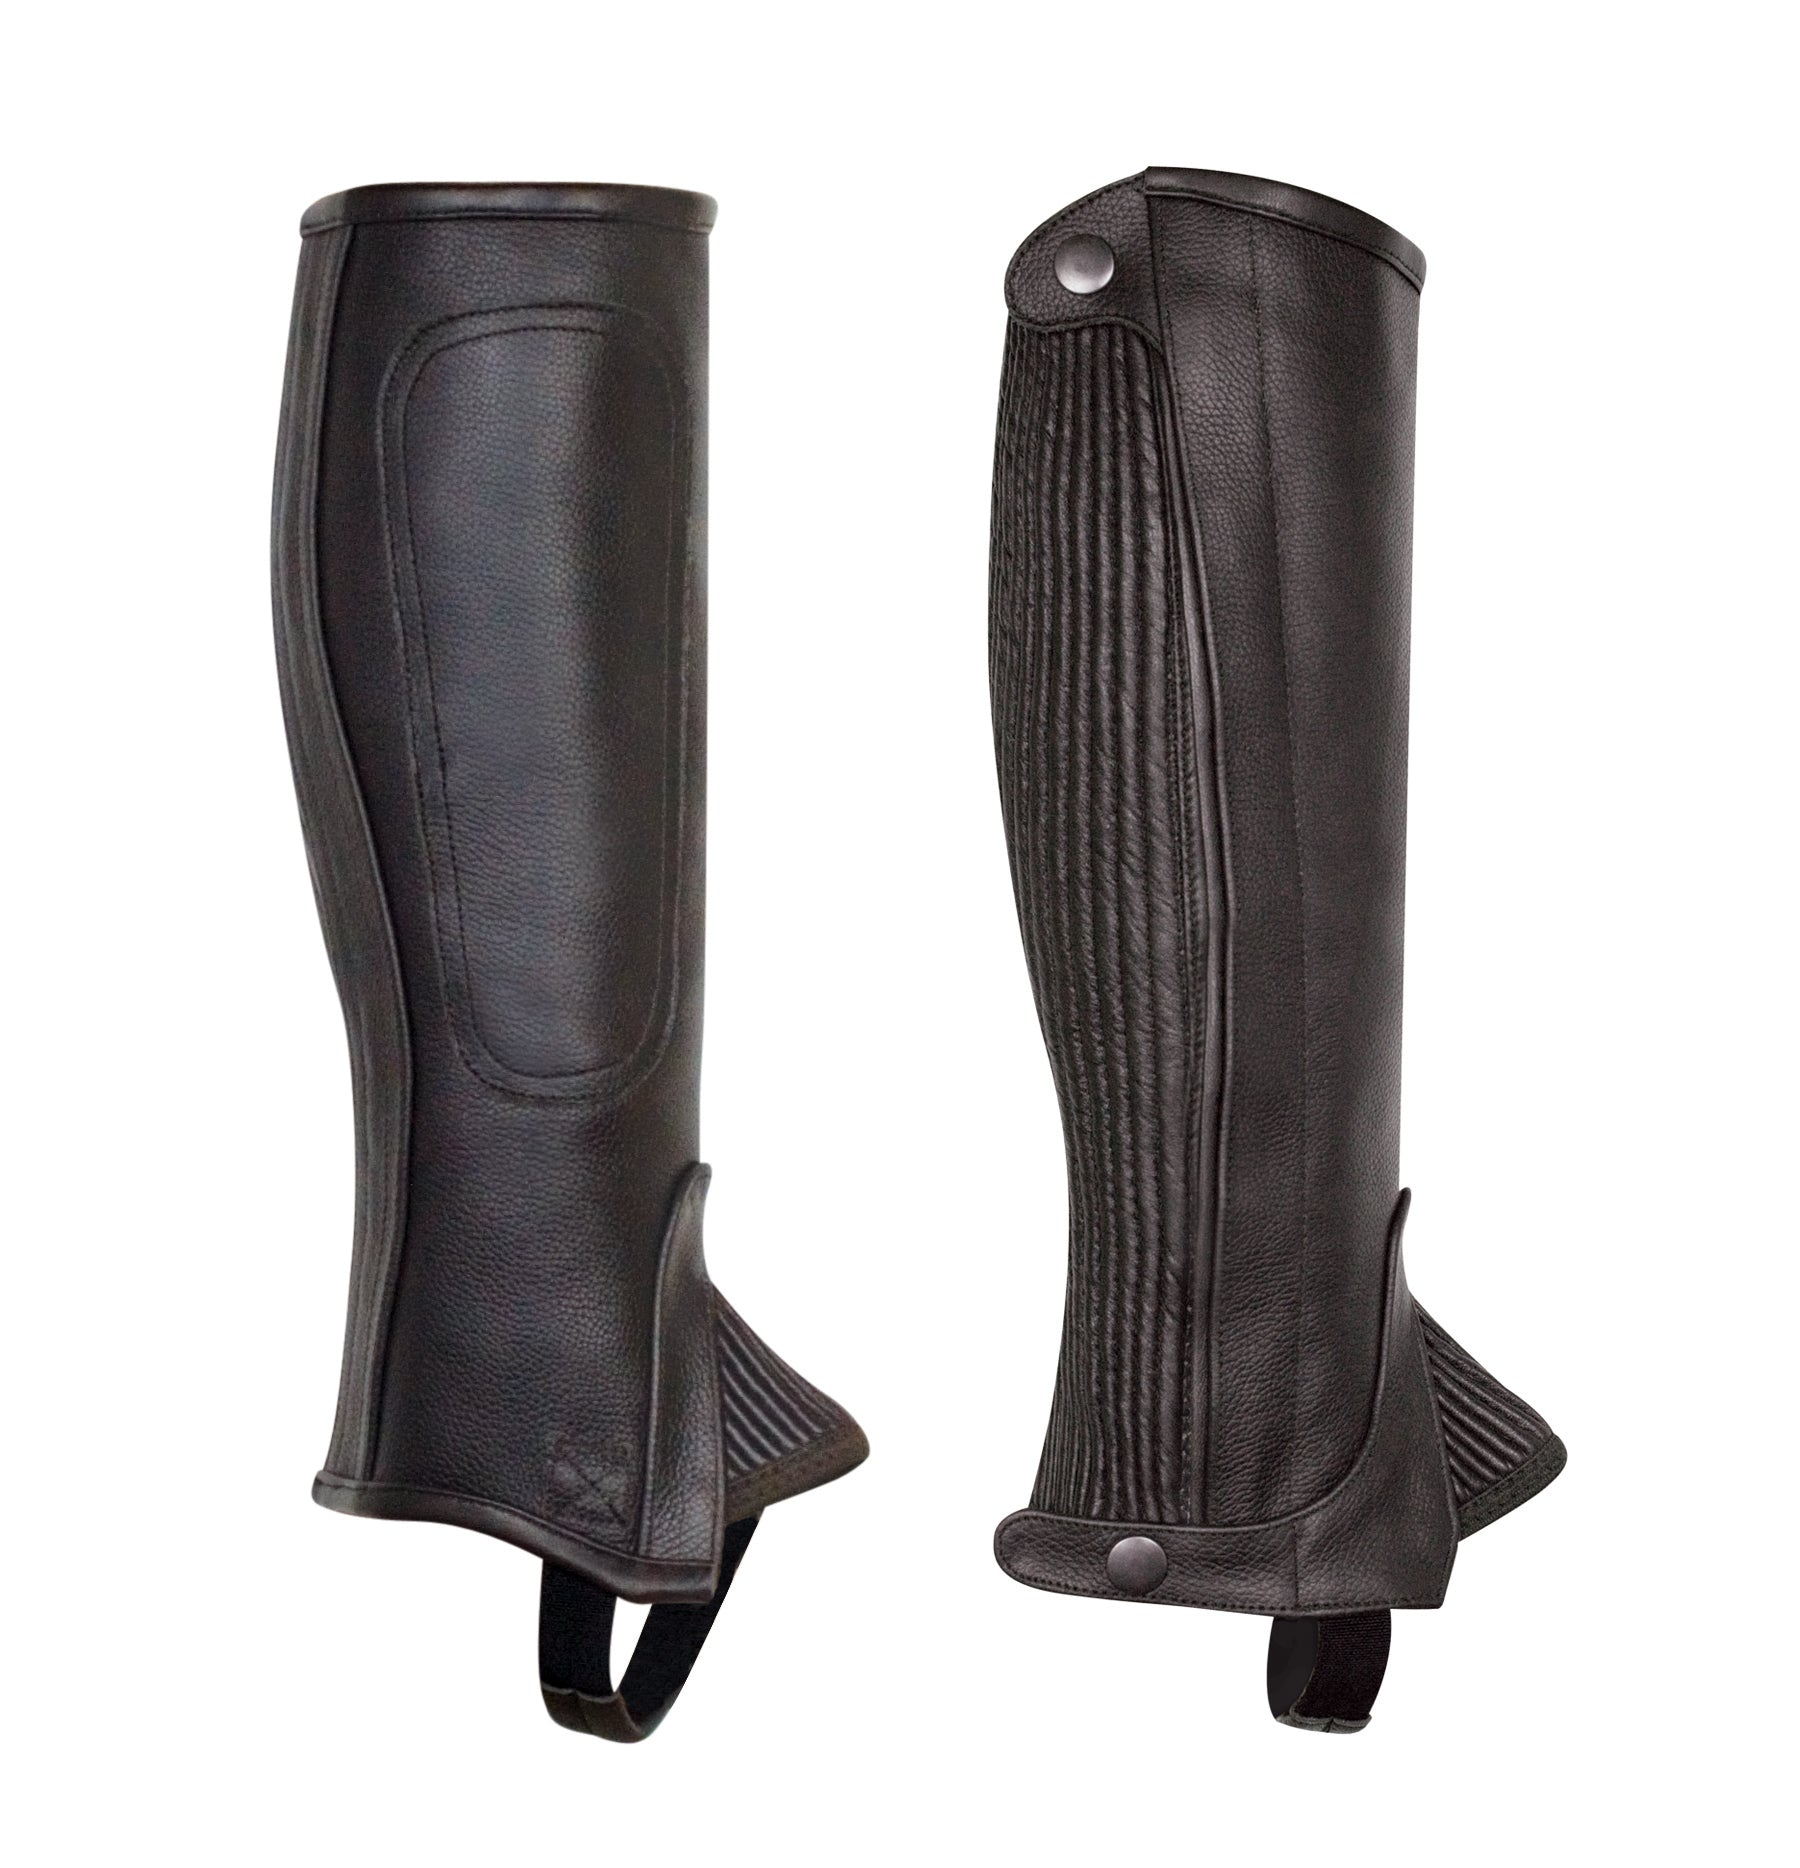 Perri's Professional Medium/Tall  Zip Half Chap - Perri's Leather - Breeches.com